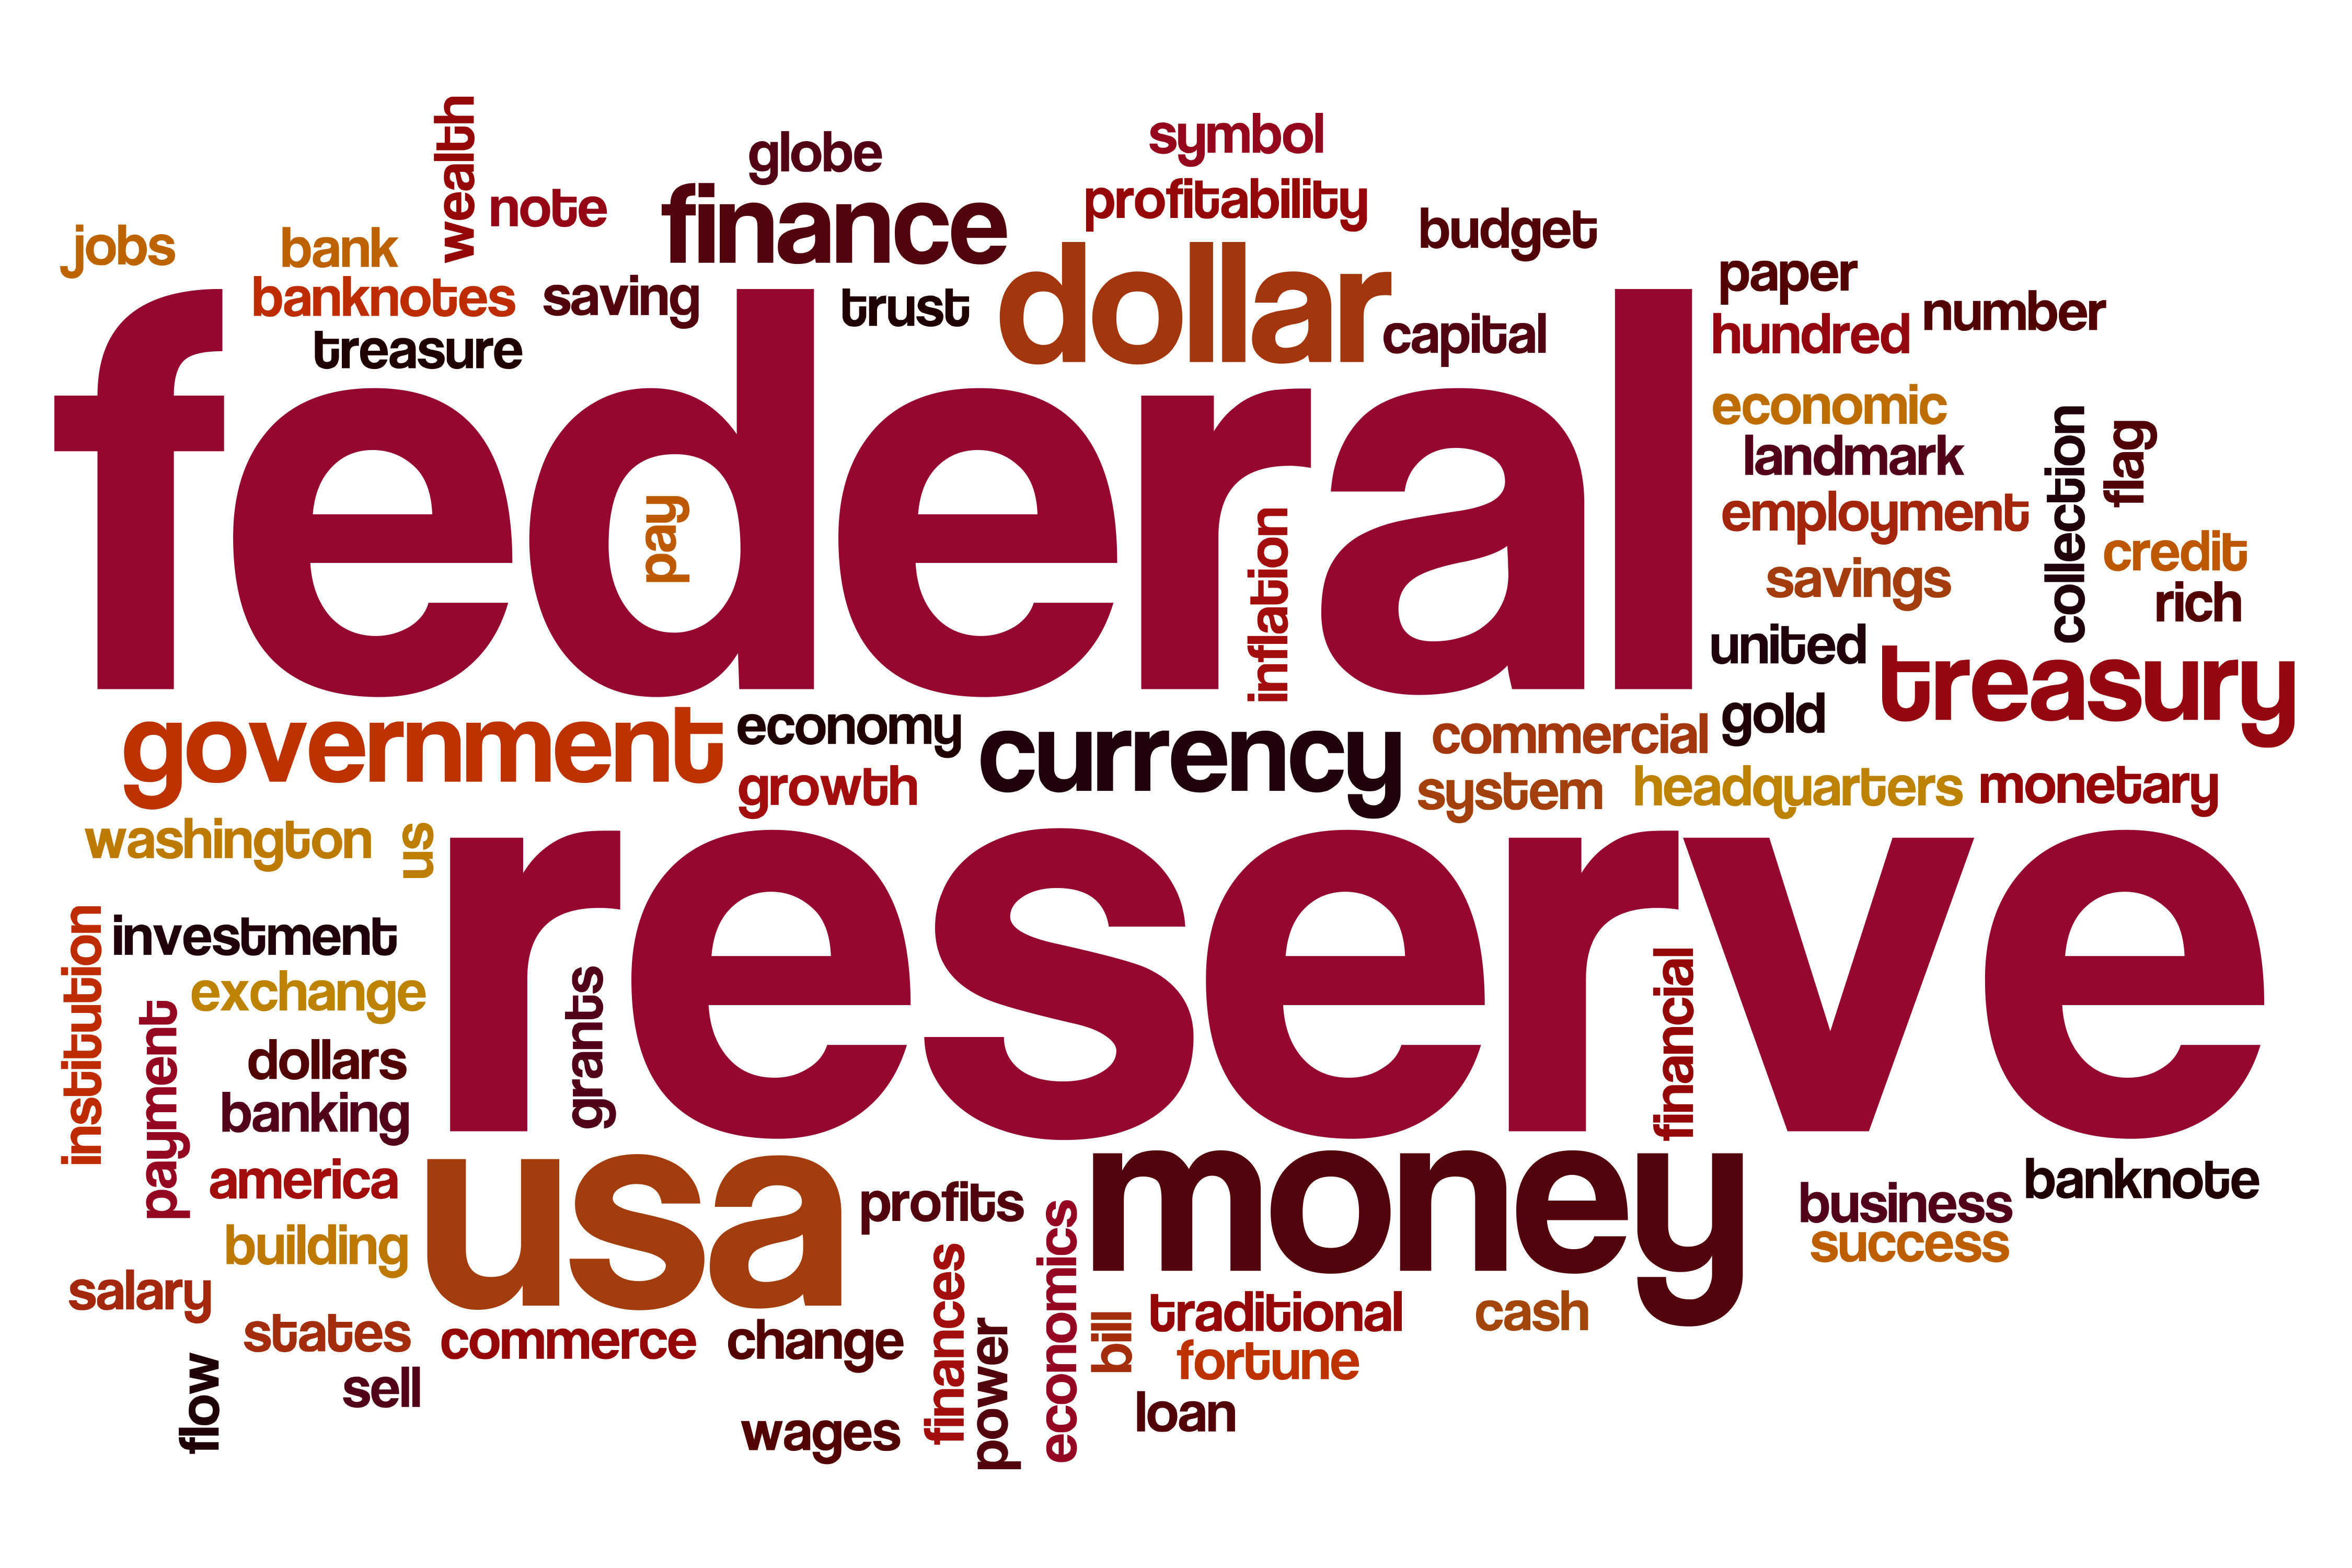 federal reserve The federal reserve foreshadowed a 'slightly steeper' rate hike path in next few years.